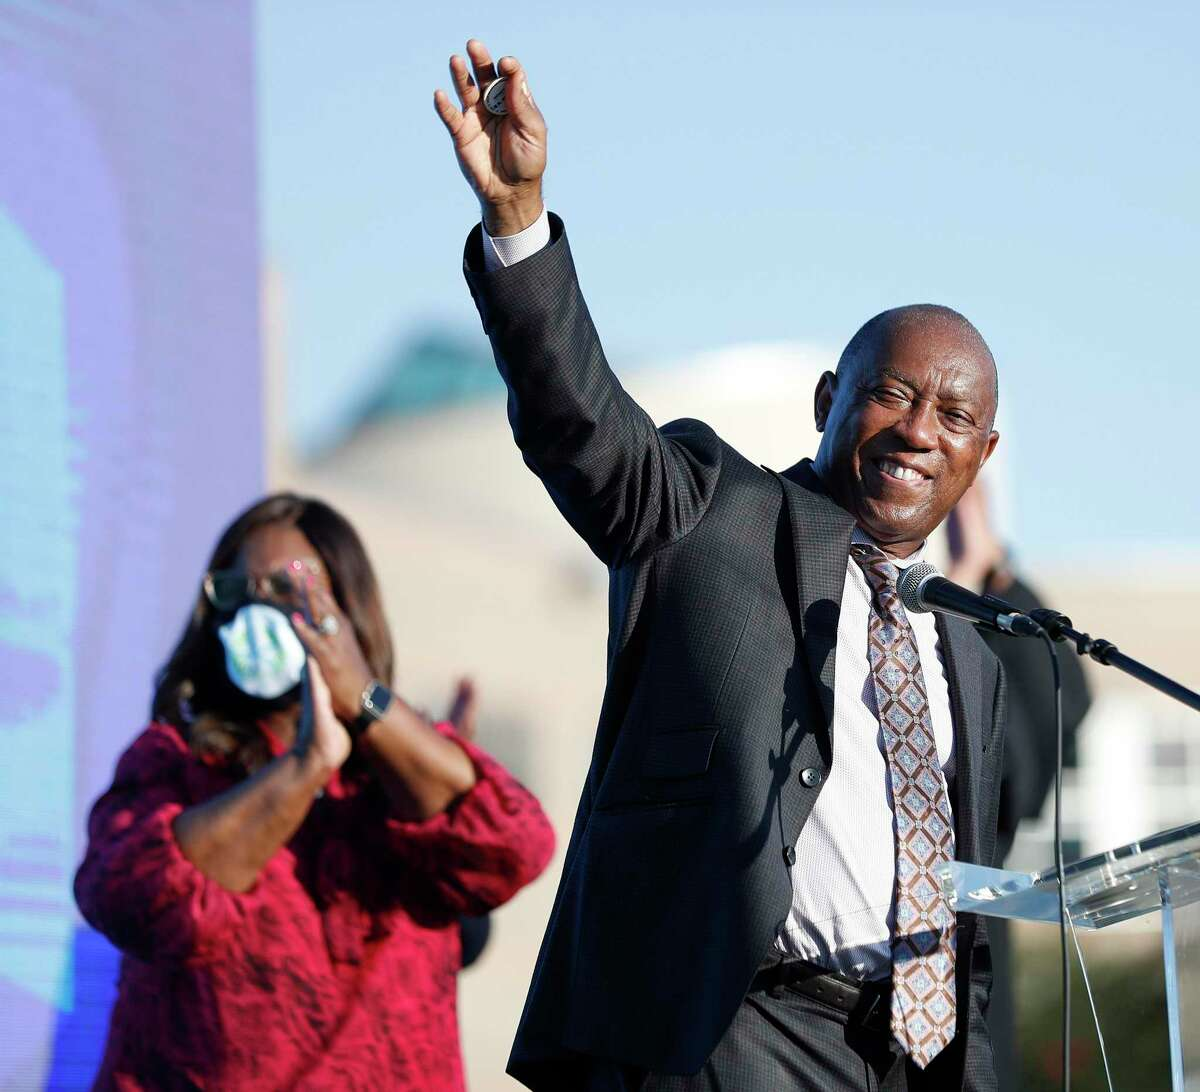 Houston Mayor Sylvester Turner, shown at a graduation celebration last month, ordered the Houston First to invoke a force majeure clause to cancel the Texas Republican Party Convention scheduled for next week. The GOP on Thursday sued Turner and Houston First over the cancellation